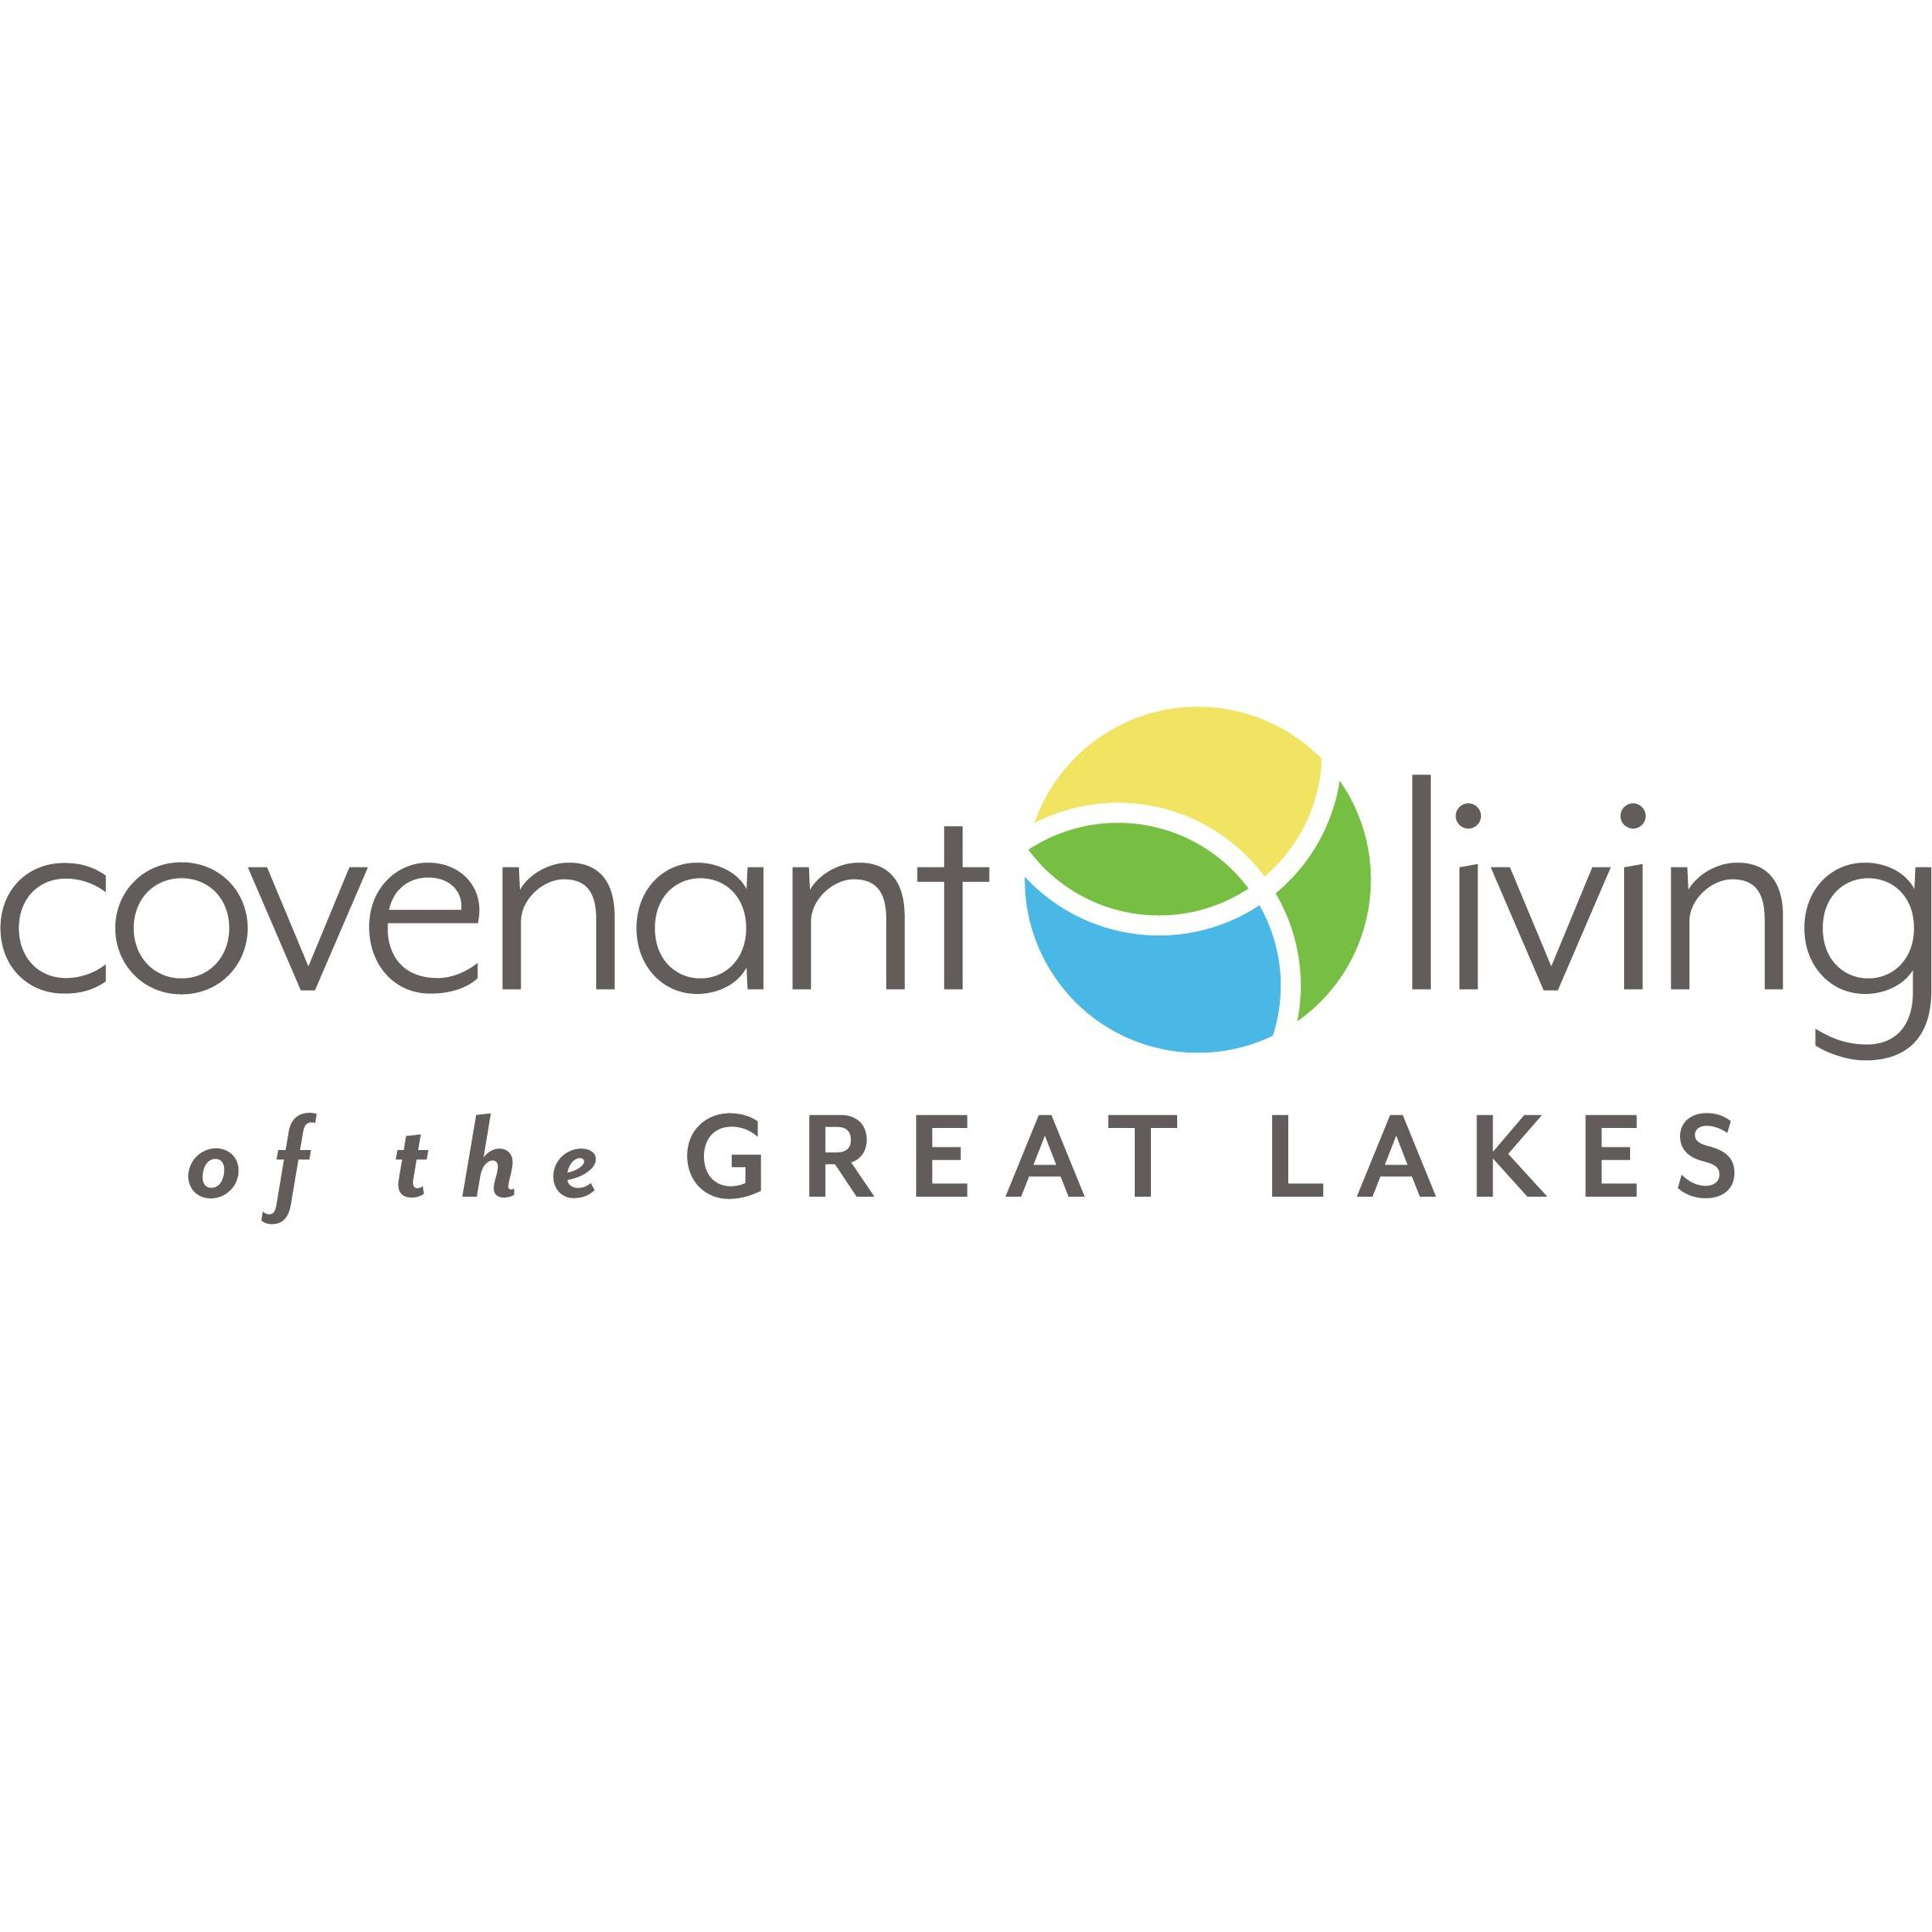 Covenant Living of Great Lakes